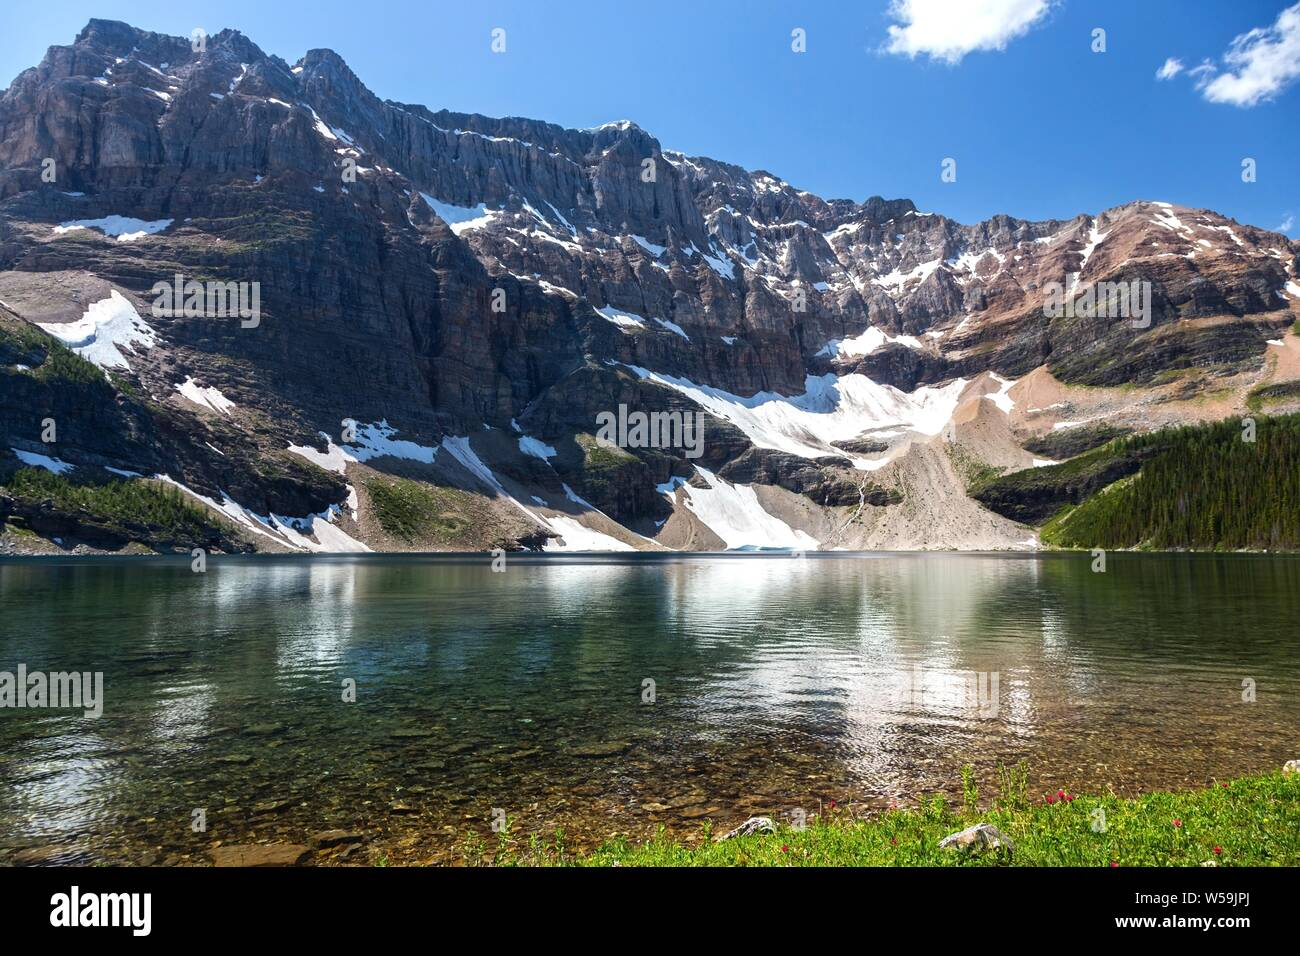 Calm Water of Beautiful Scarab Lake and Rugged Mountain Peaks in the Background. Banff National Park Summertime Canadian Rockies Stock Photo